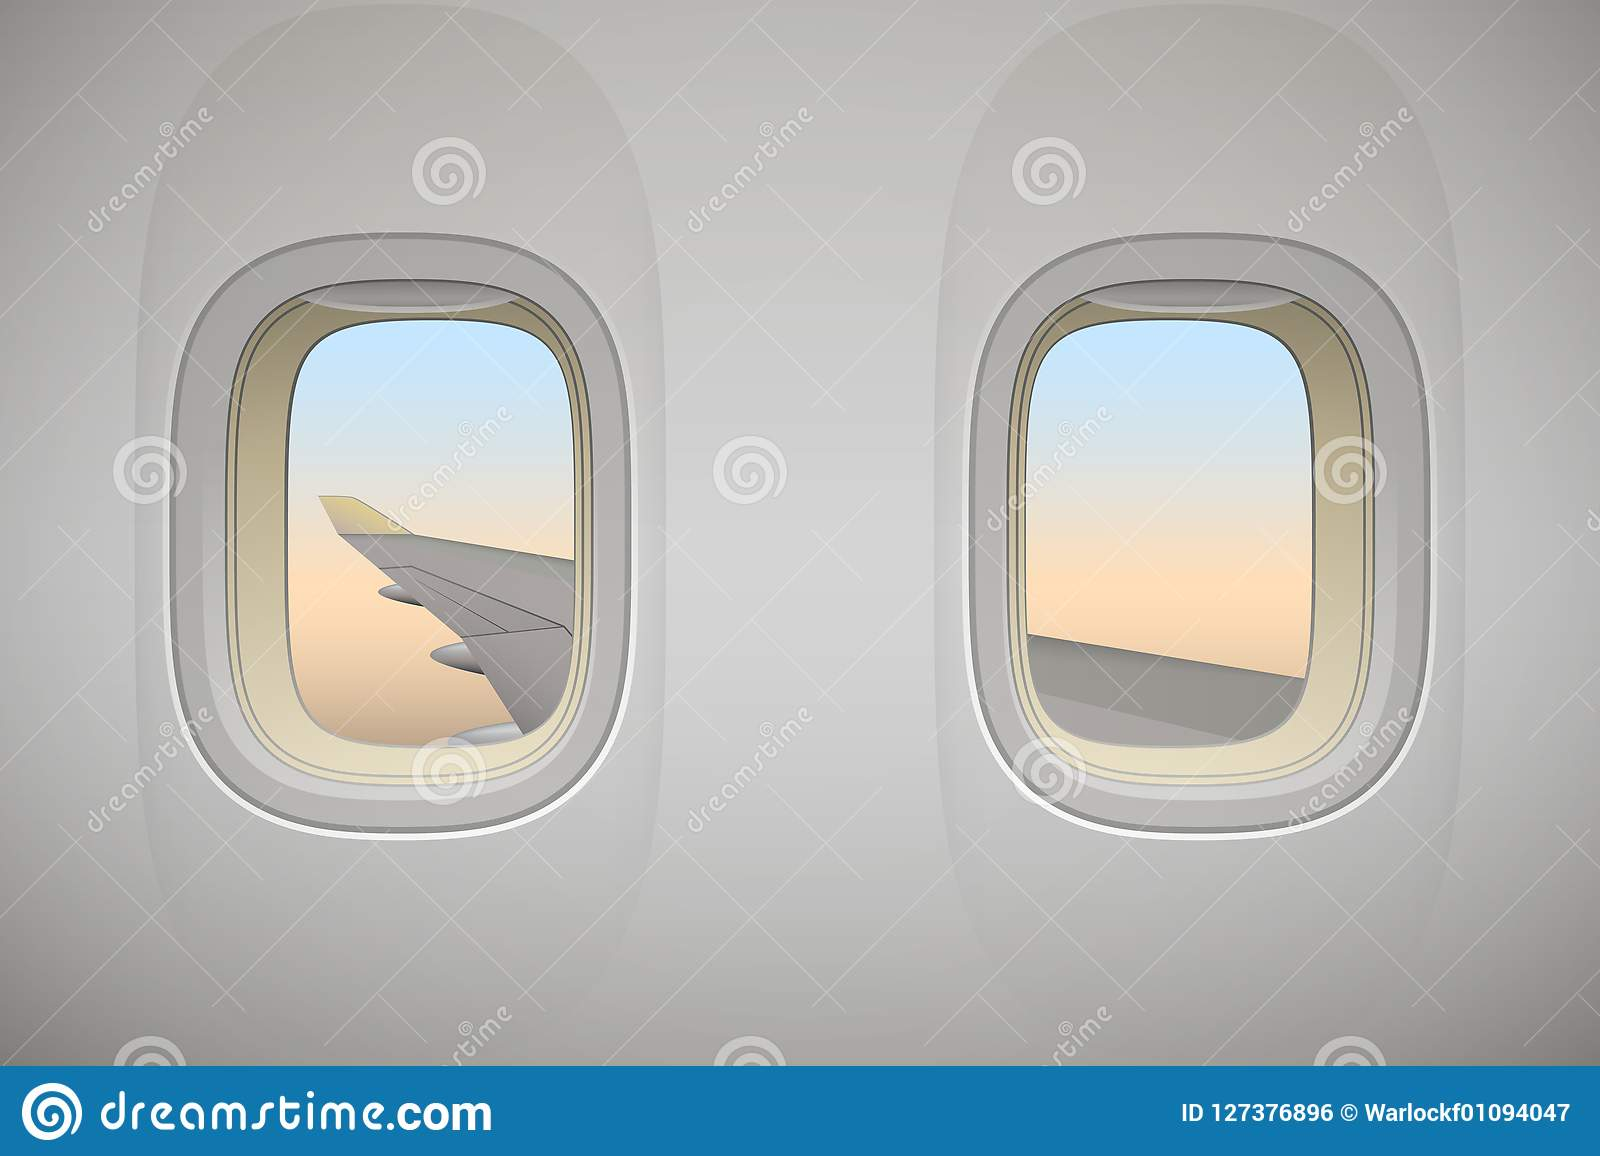 Airplane window, aircraft window with wing